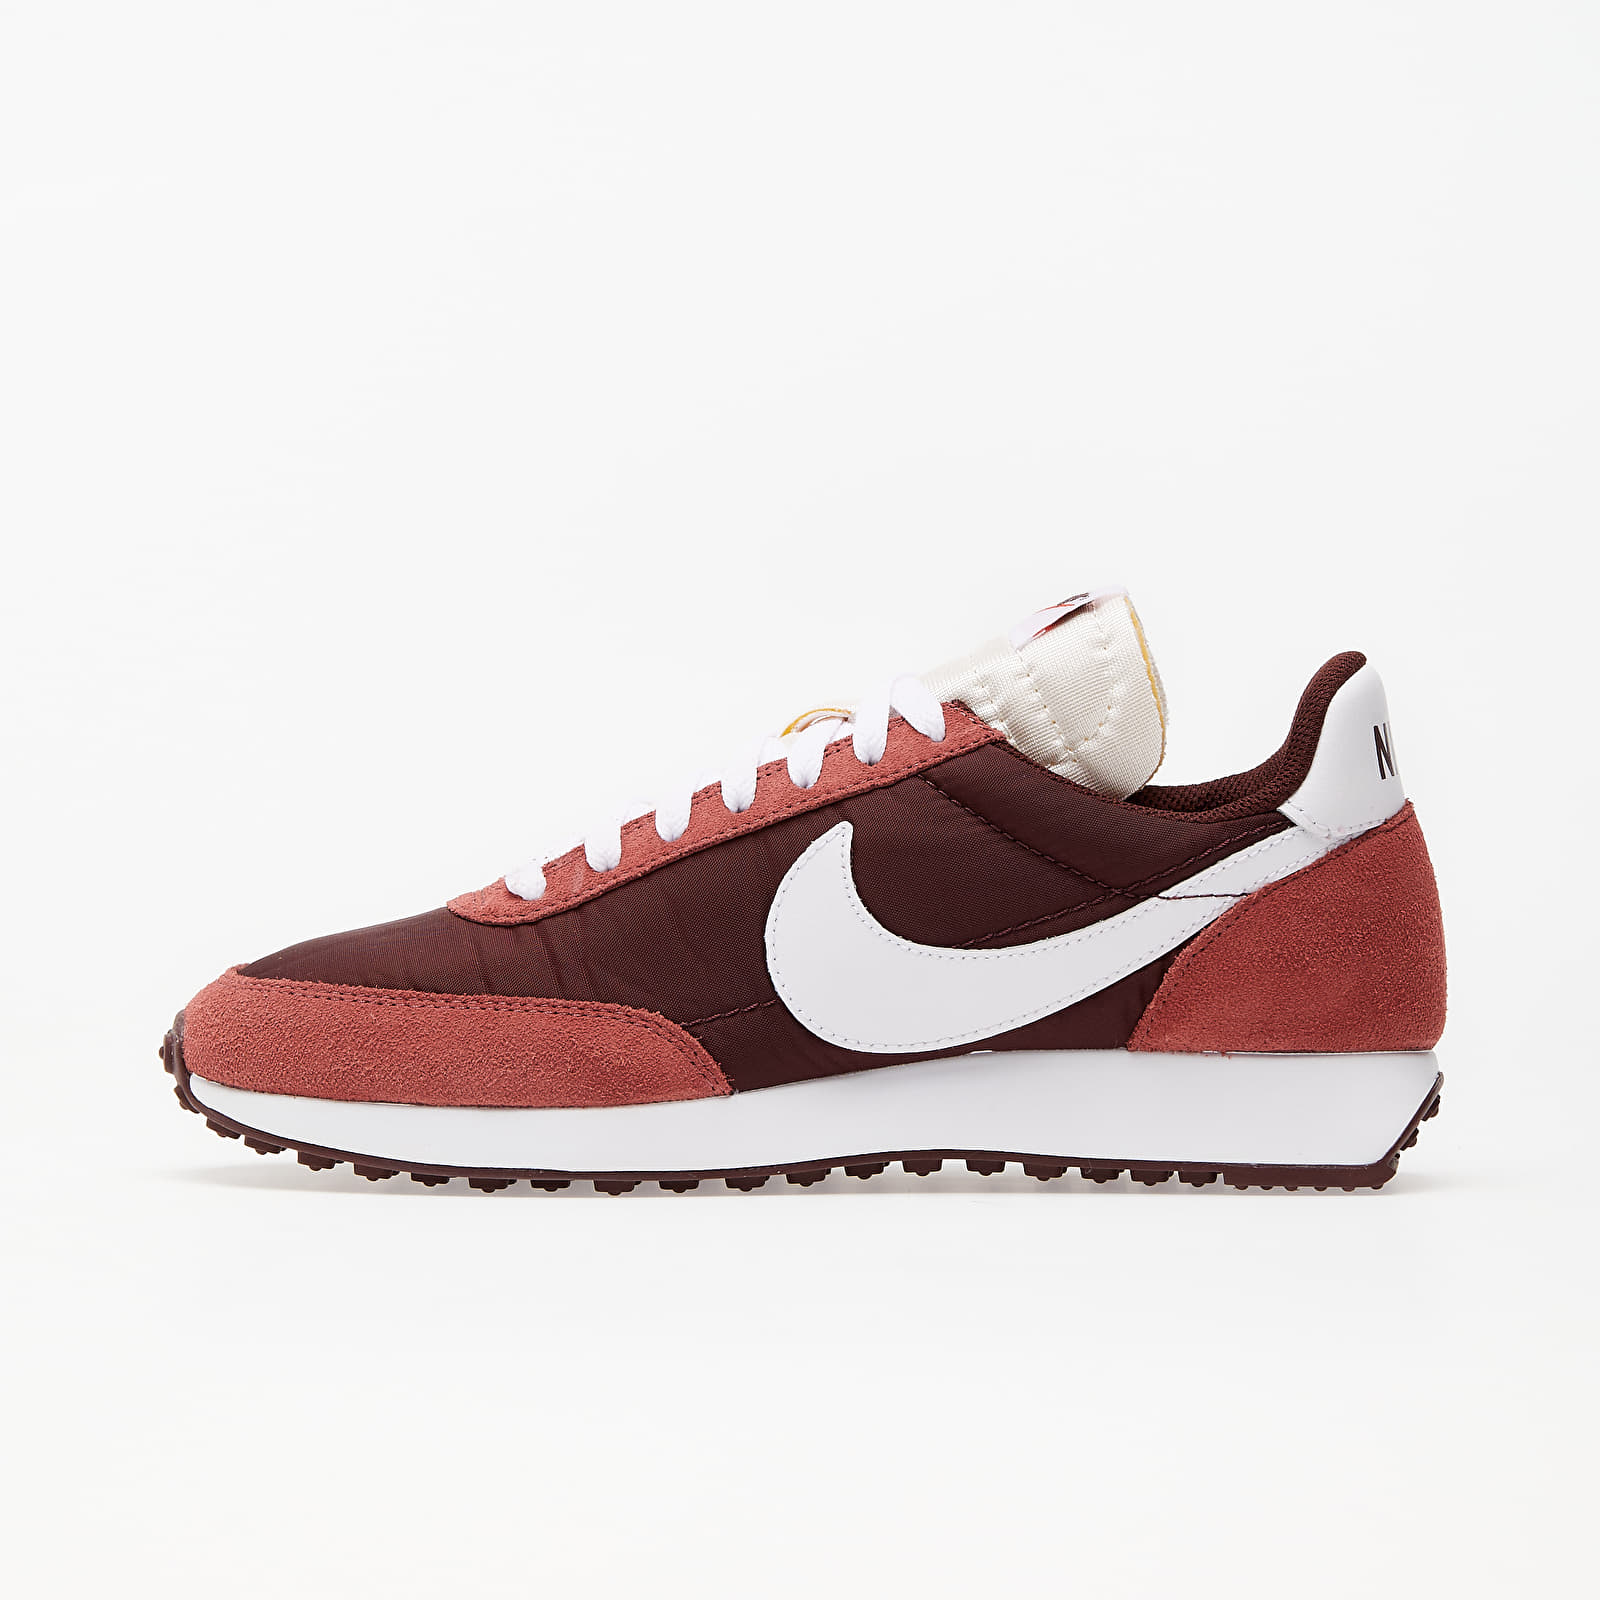 Chaussures et baskets homme Nike Air Tailwind 79 Mystic Dates/ White-Claystone Red-Sail